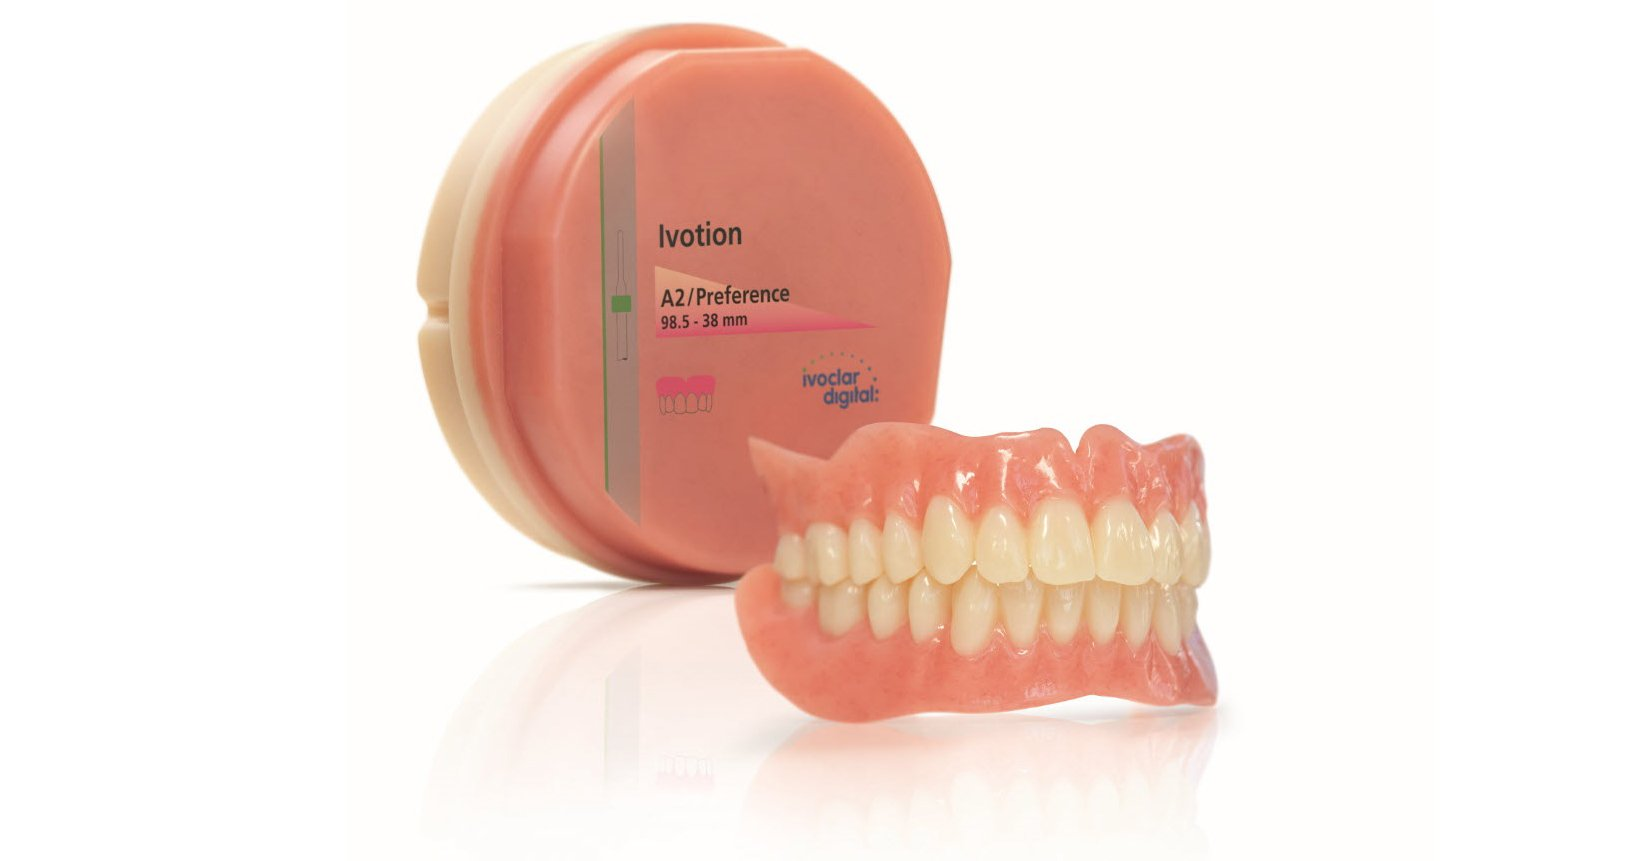 Digital Denture Solutions Takes Center Stage at the 2020 Chicago Midwinter Meeting